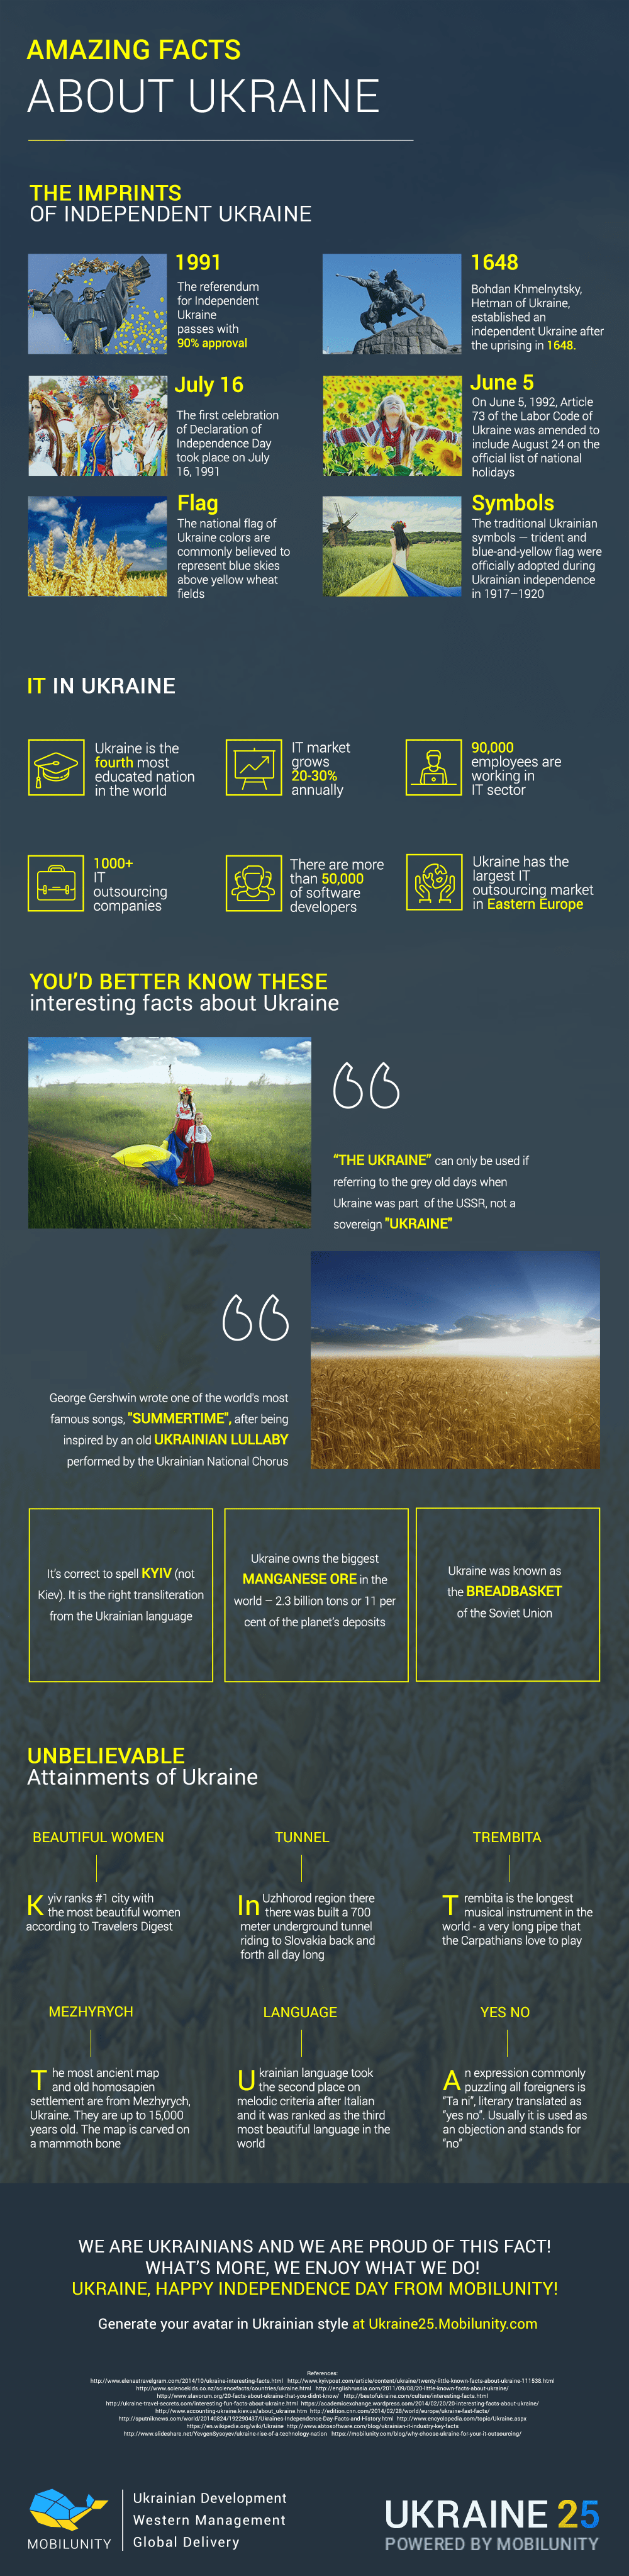 Facts About Ukraine and Ukrainian Independence Day